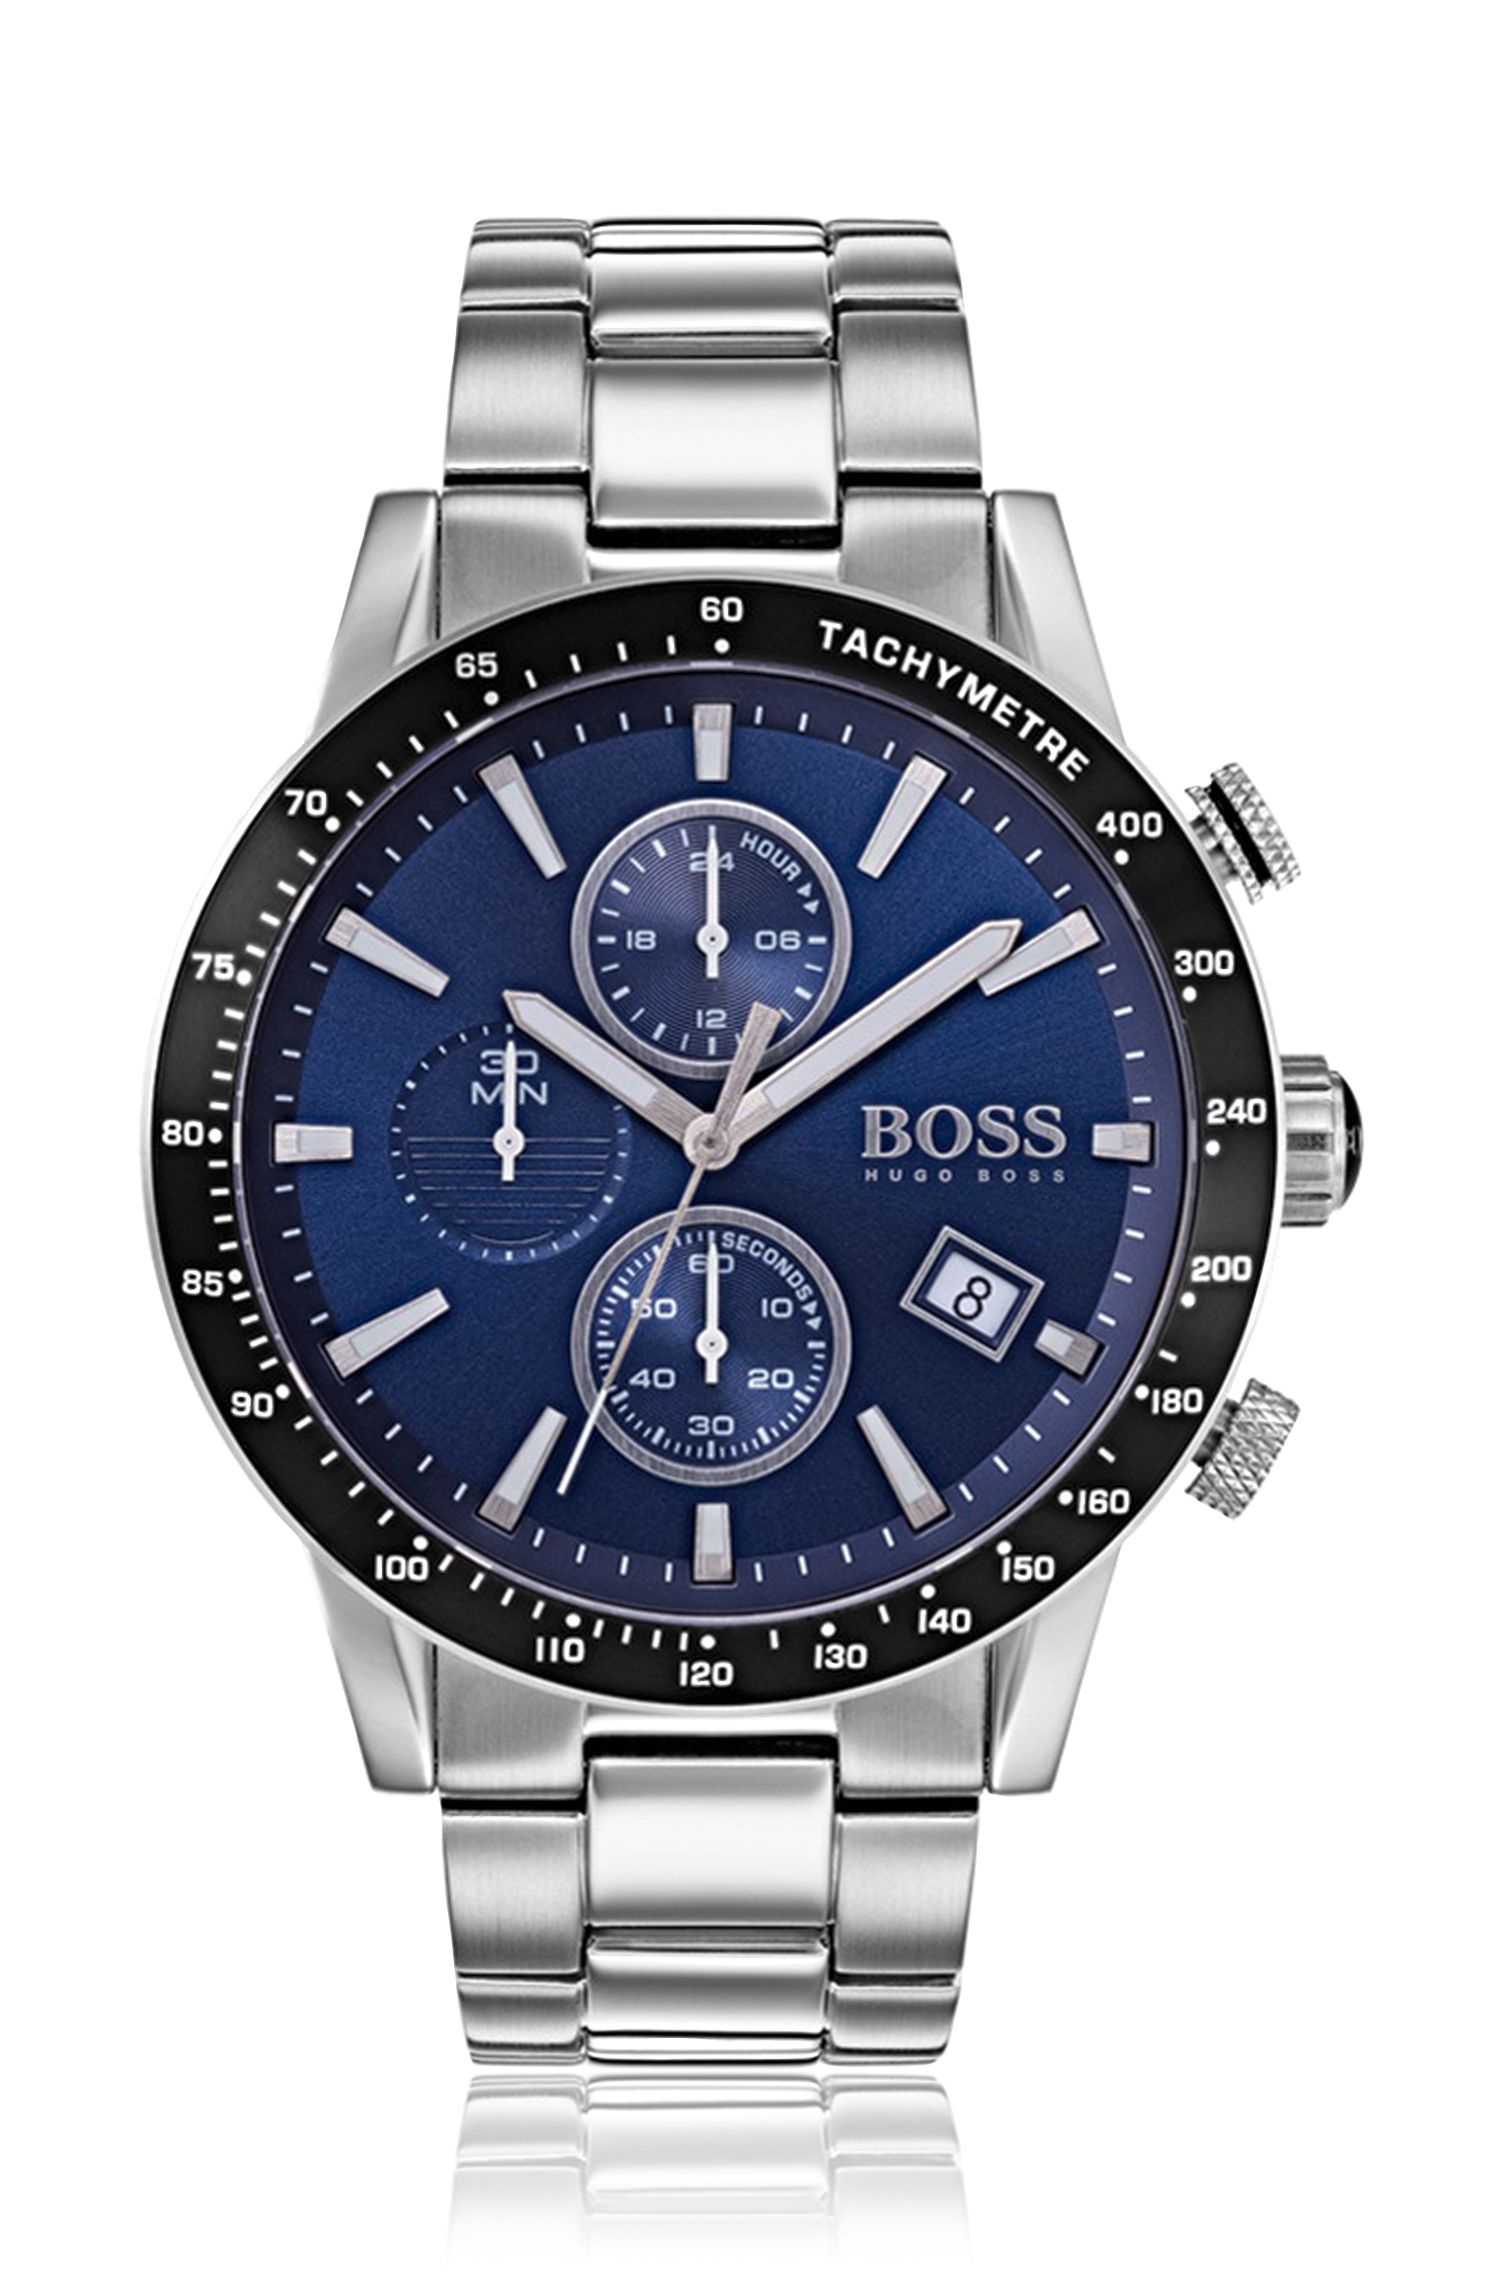 Stainless-steel sports watch with blue dial and link bracelet